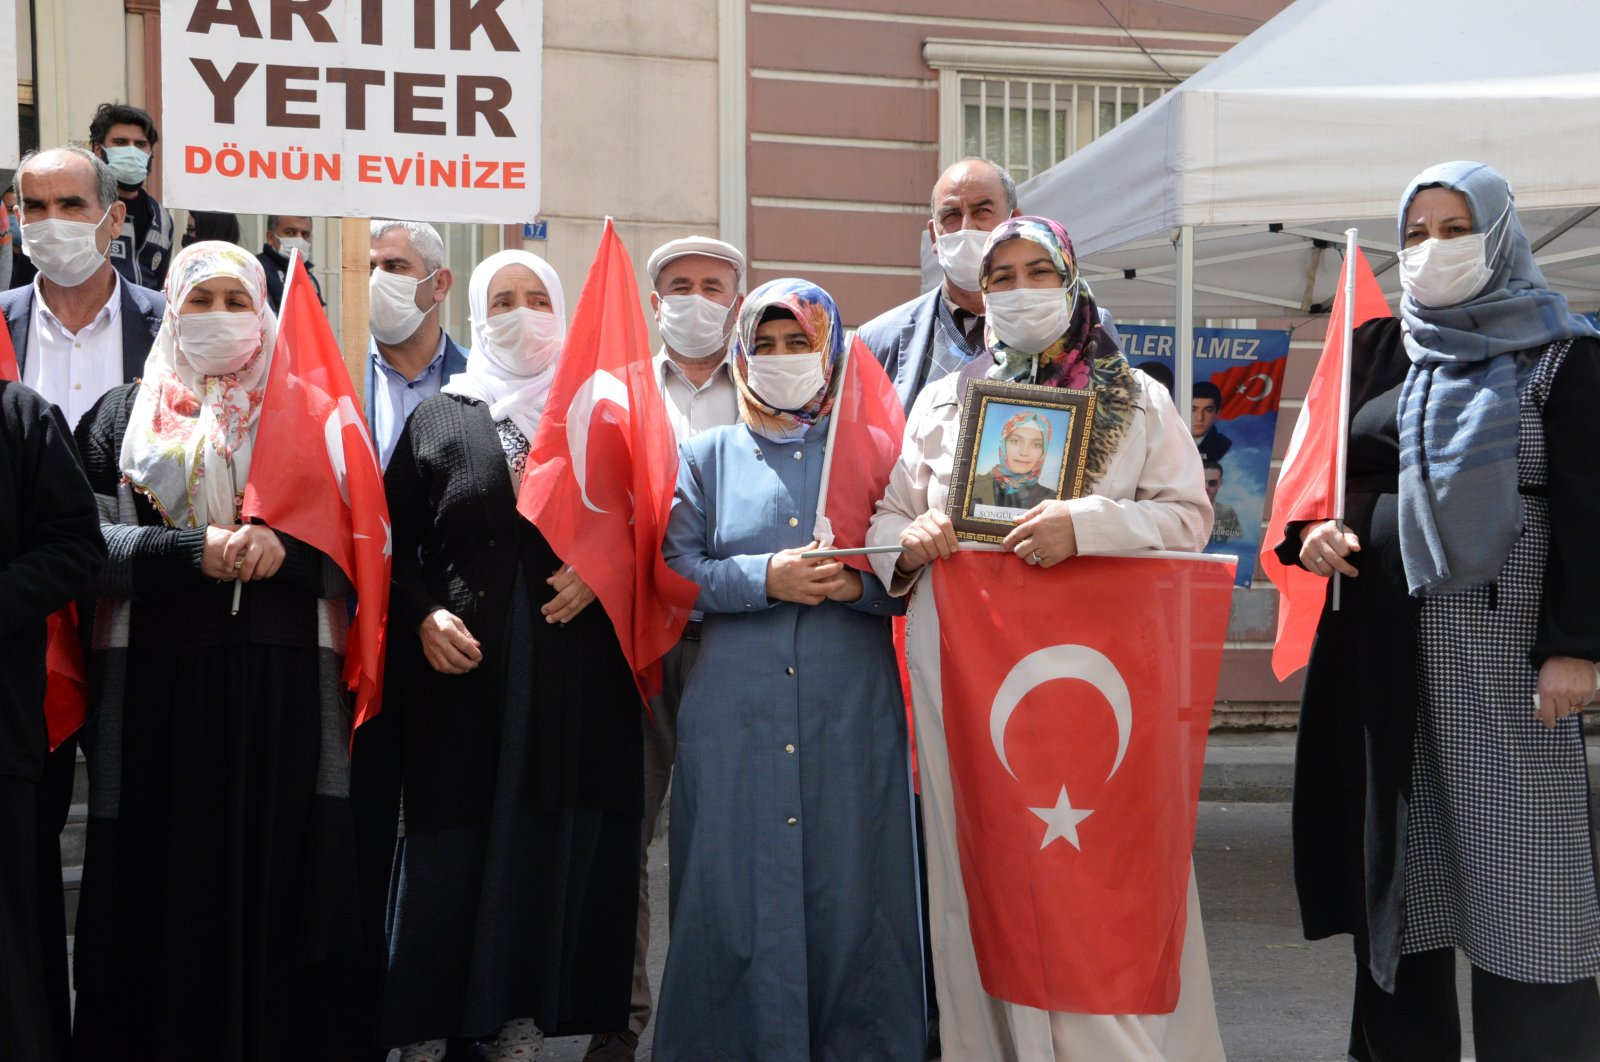 Families of children abducted or forcibly recruited by the PKK terrorist group staging a protest in Diyarbakır, Turkey, April 11, 2021. (DHA)